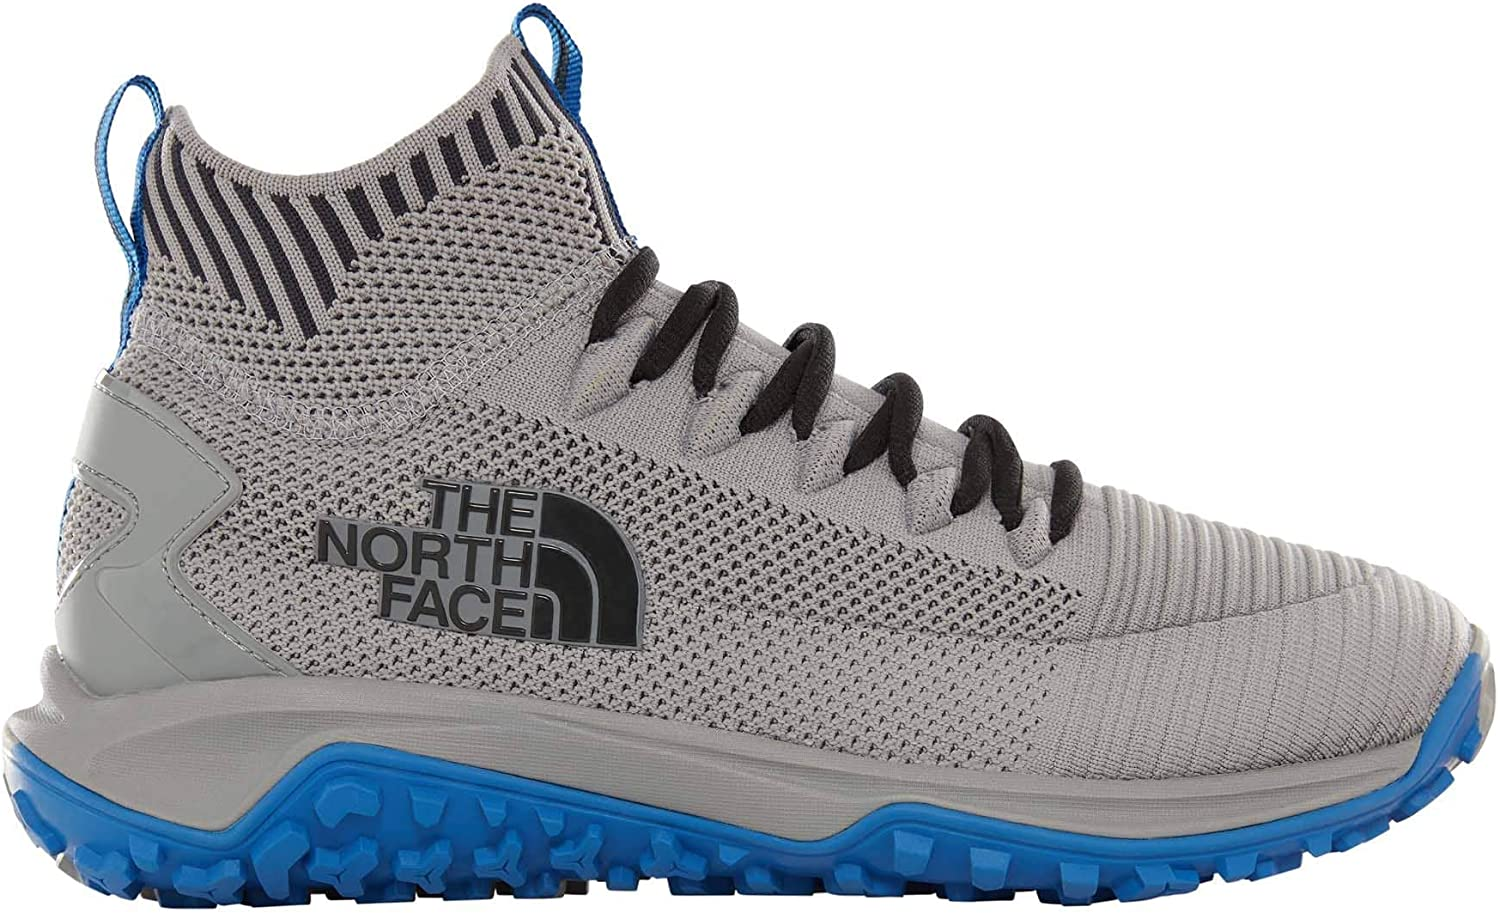 THE NORTH FACE Truxel Mid: Amazon.co.uk